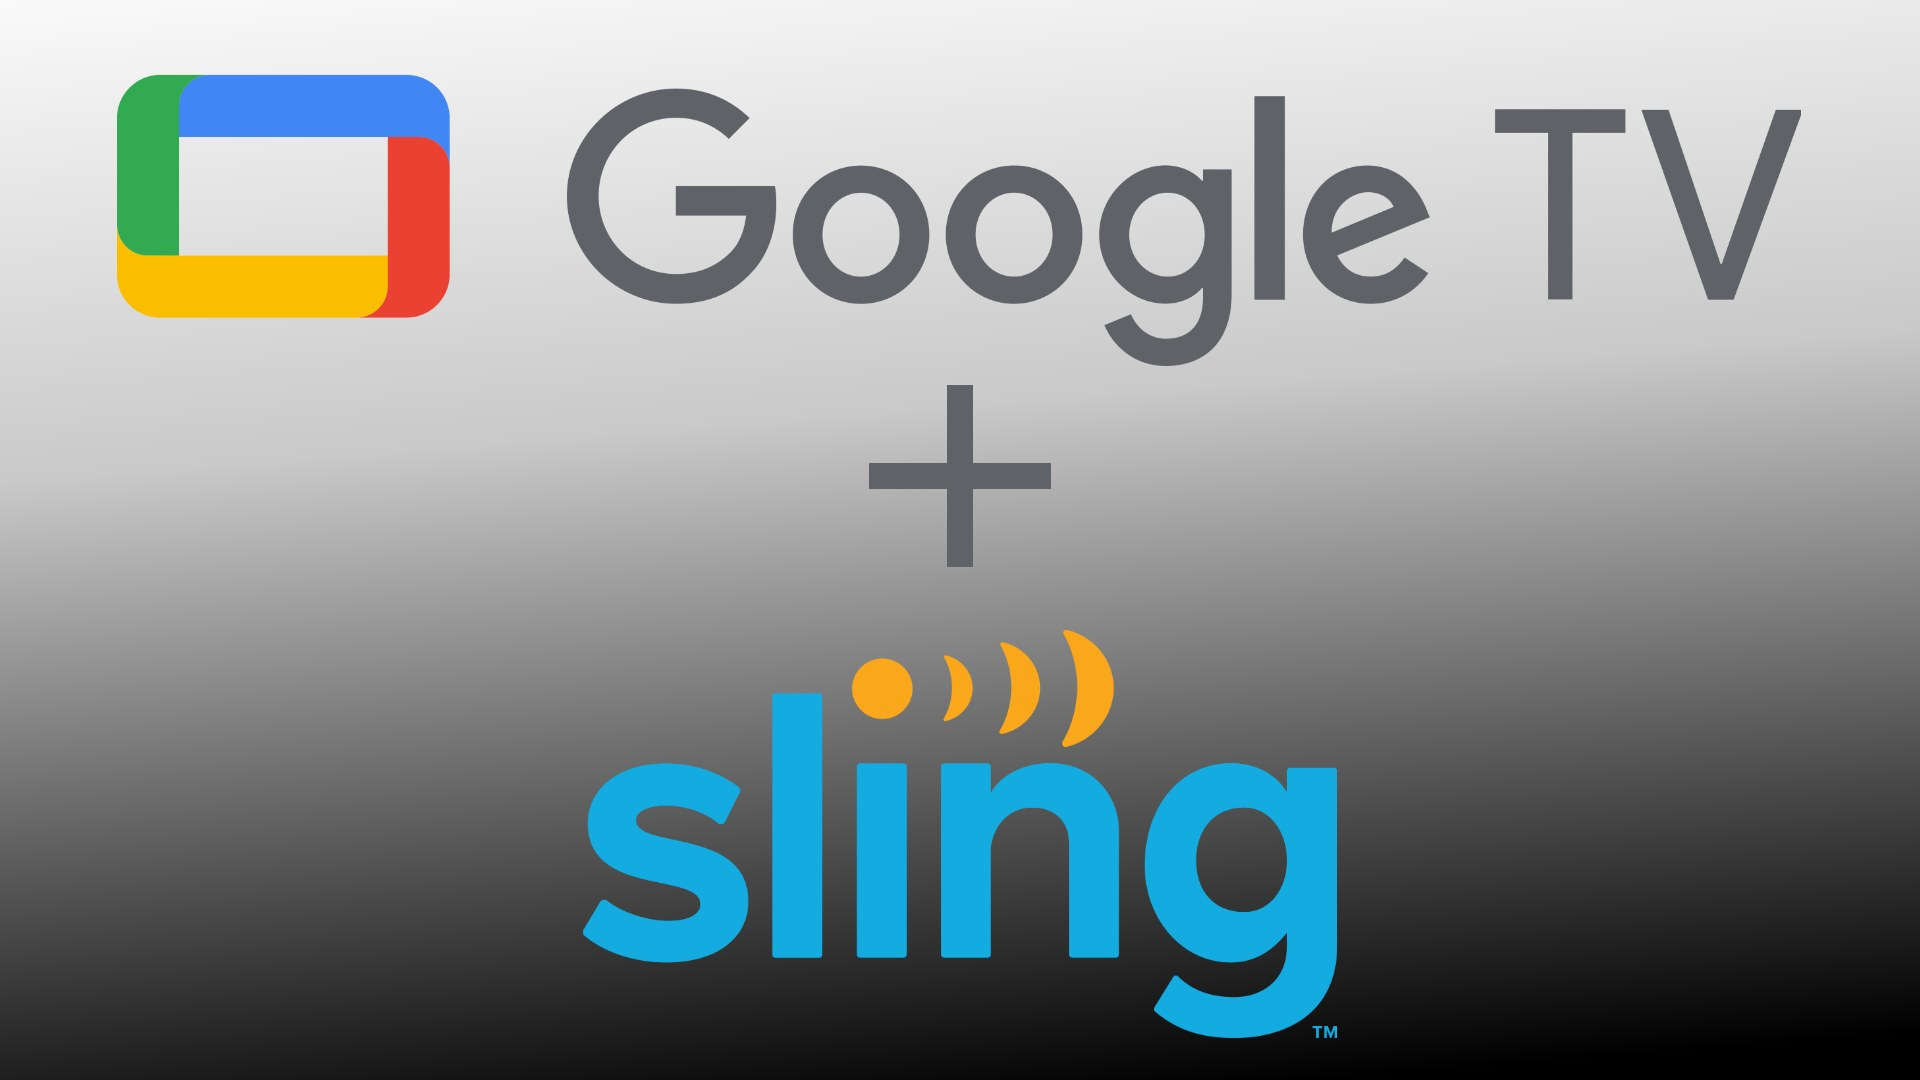 Sling TV is now fully integrated into Chromecast with Google TV live tab